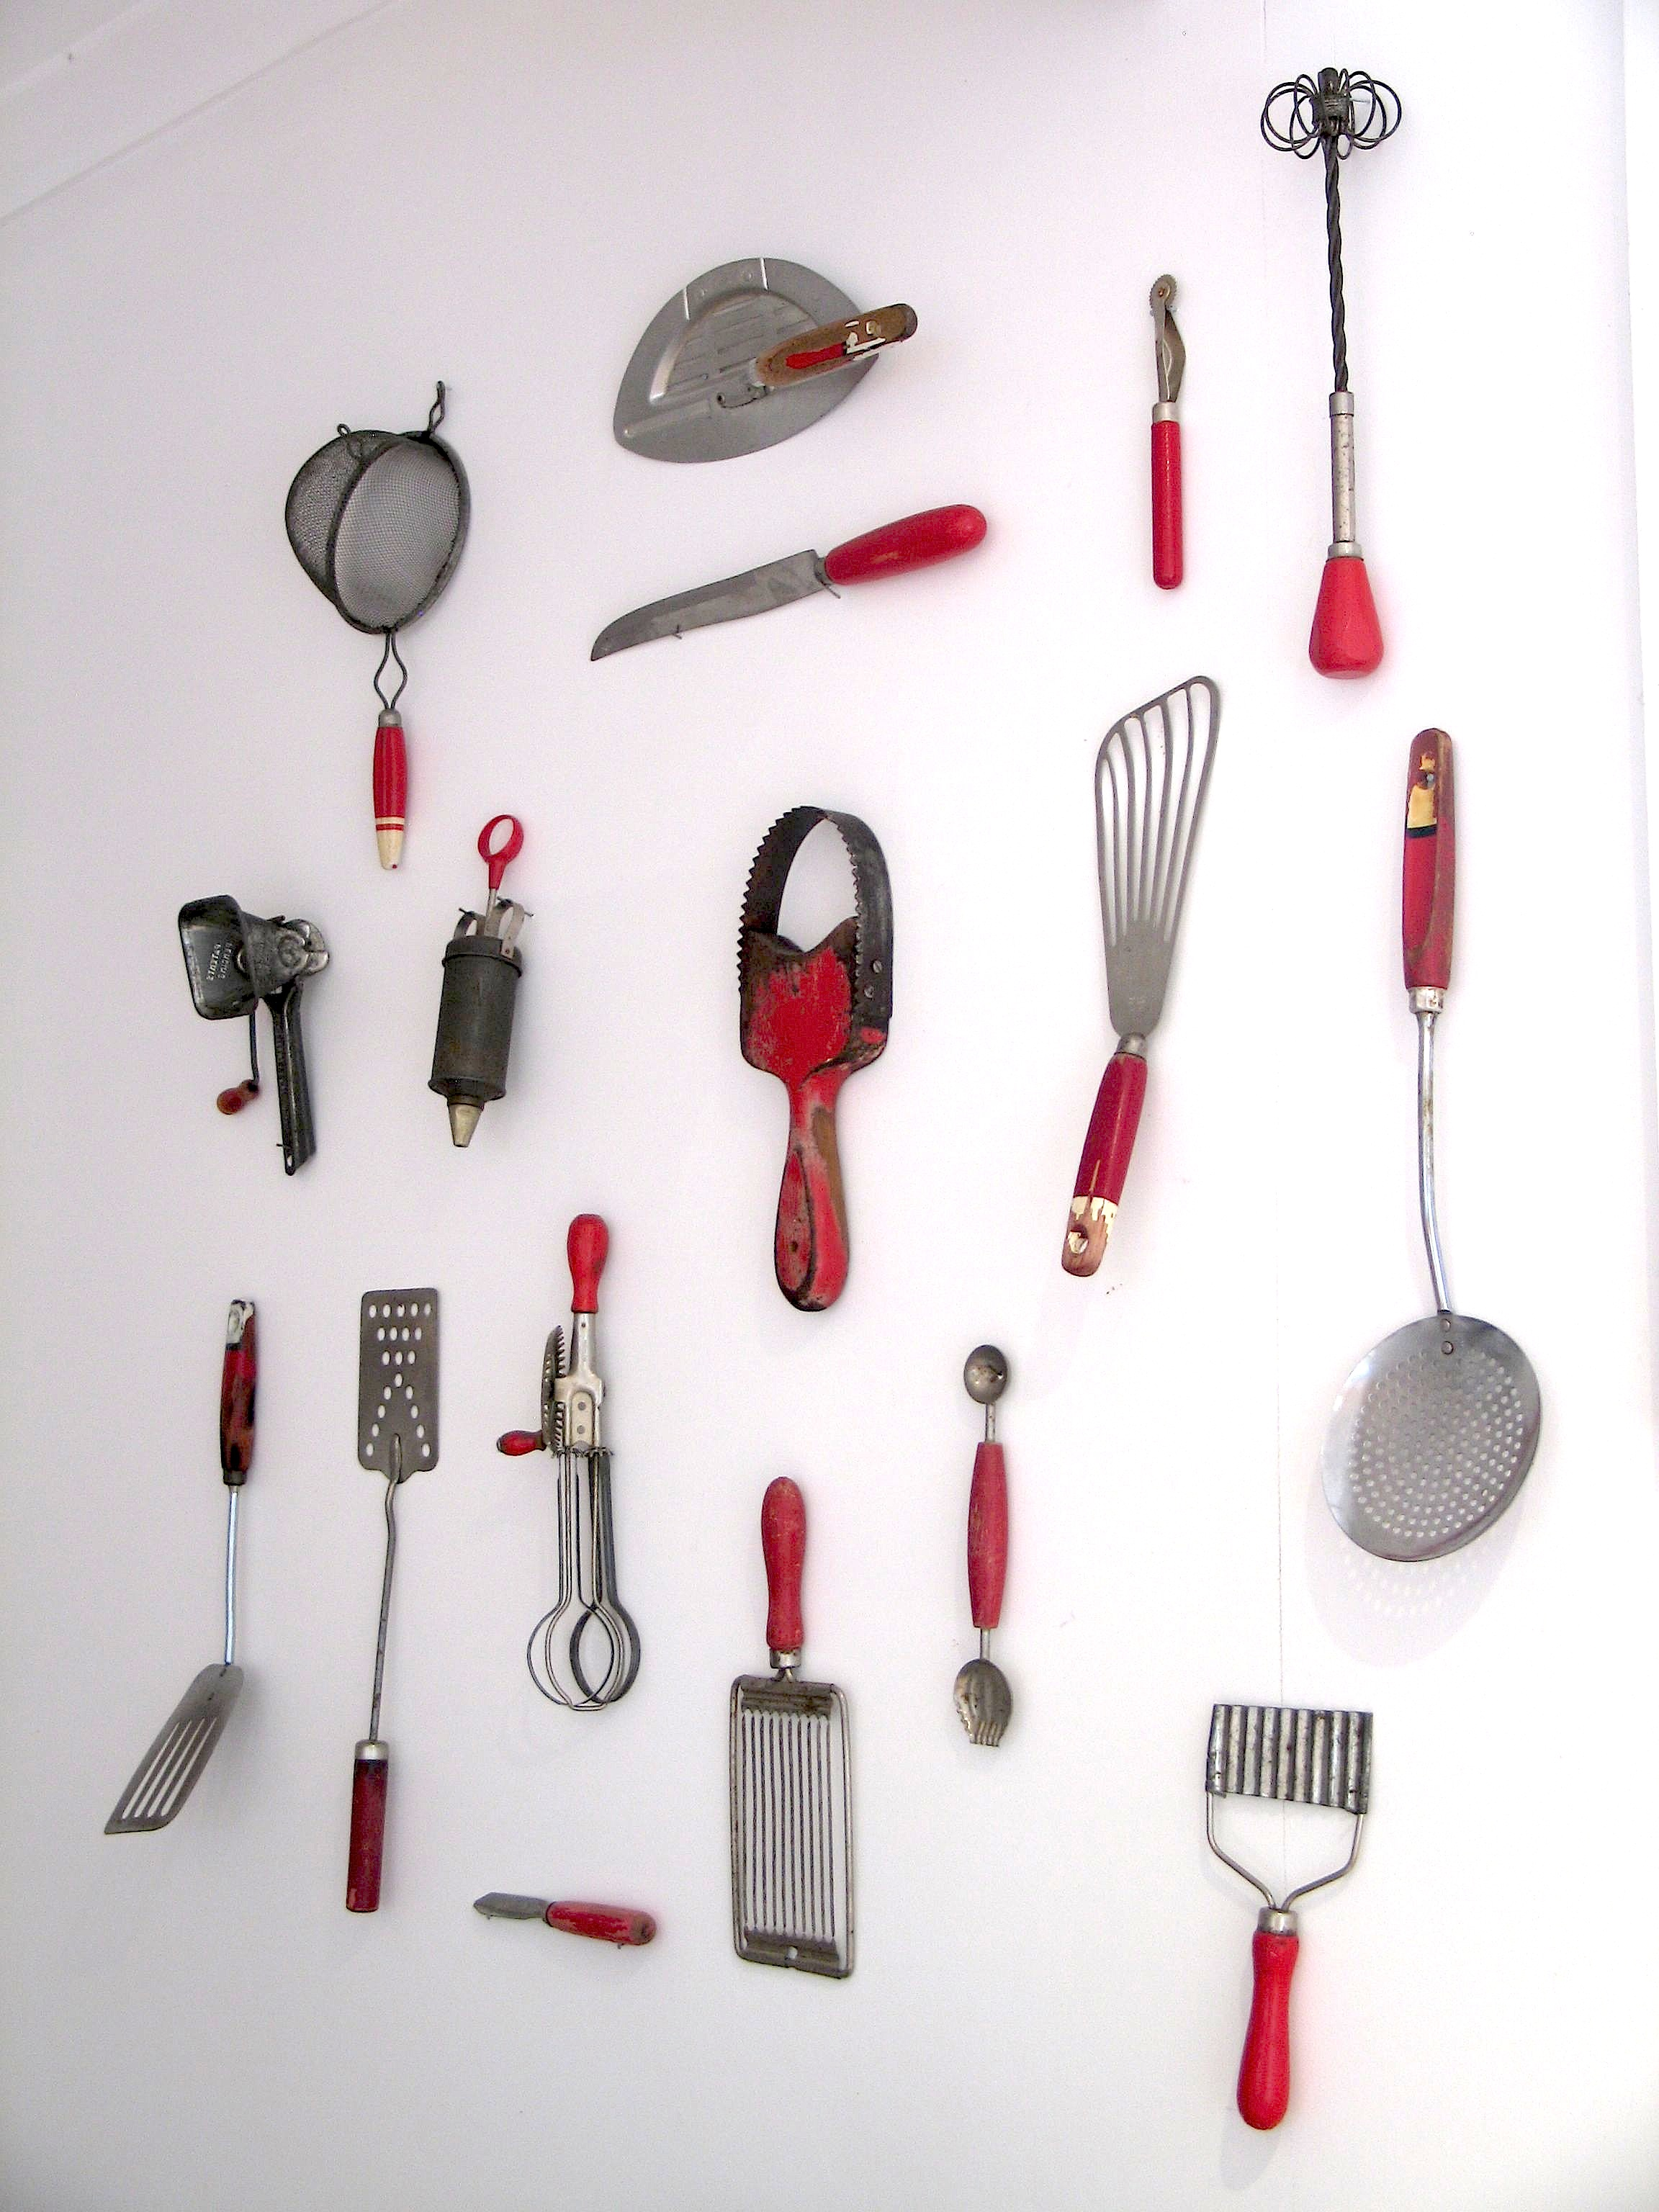 Kitchen Utensils Equipment ~ I have completed my kitchenalia wall collection of red